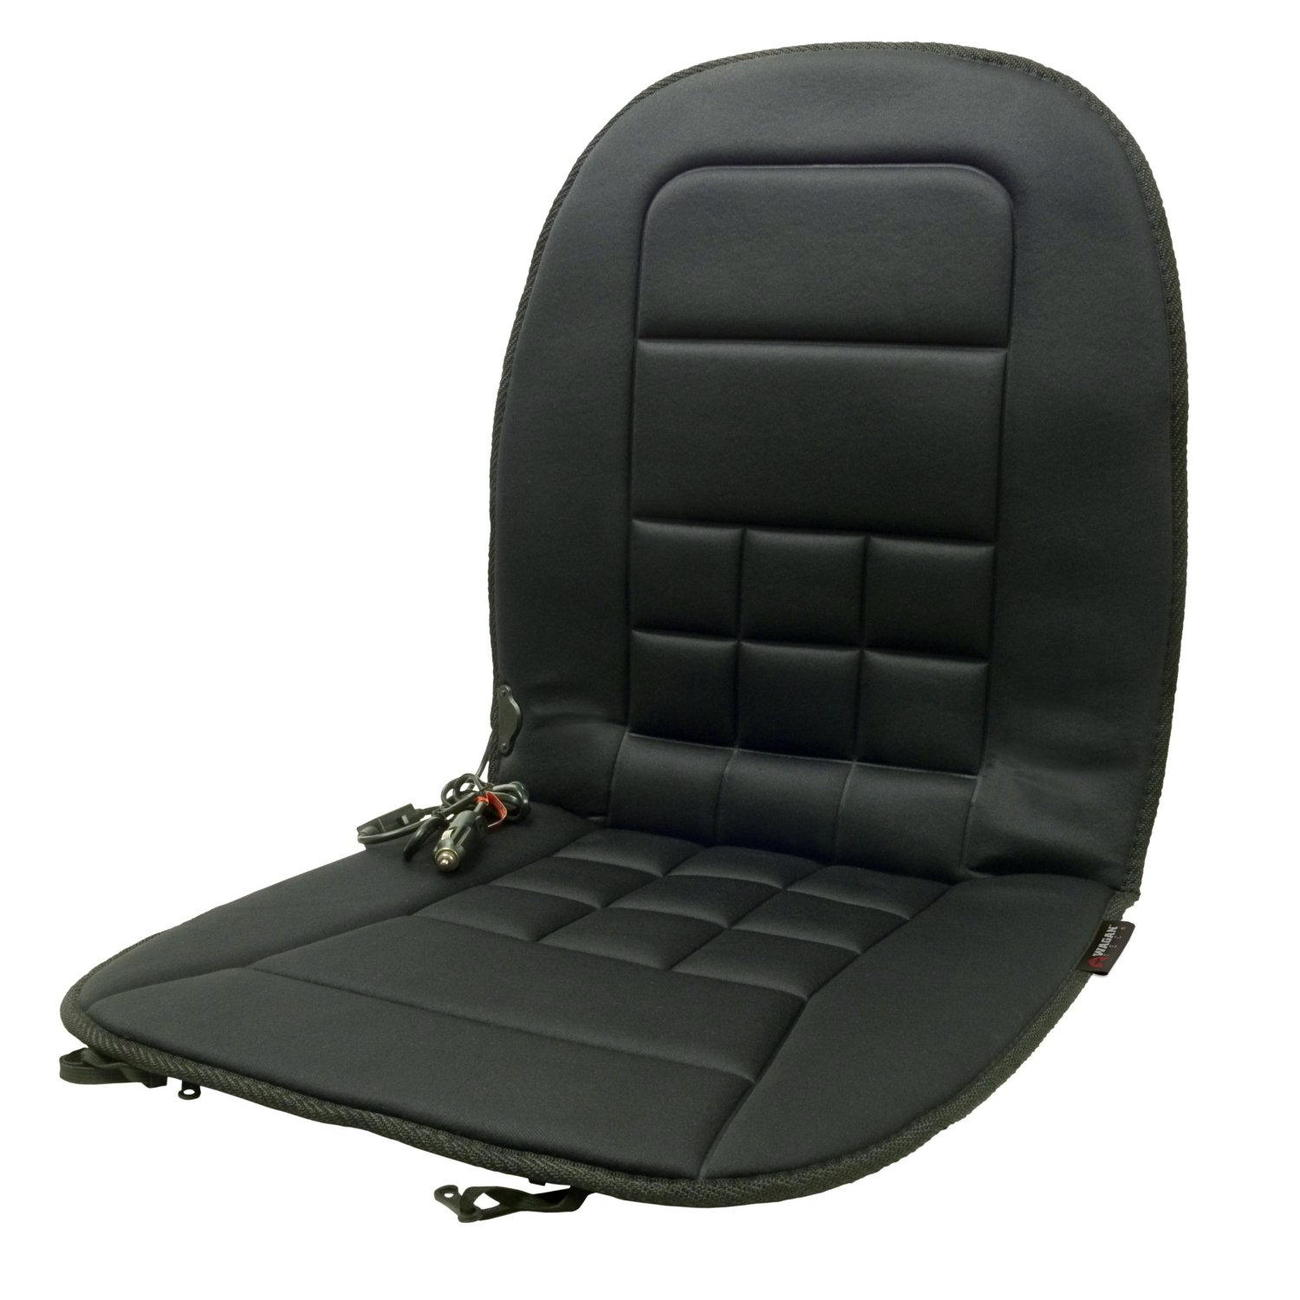 kitchen chair cushions canadian tire posture alignment heated seat cushion wagan in9738 5 12 volt black